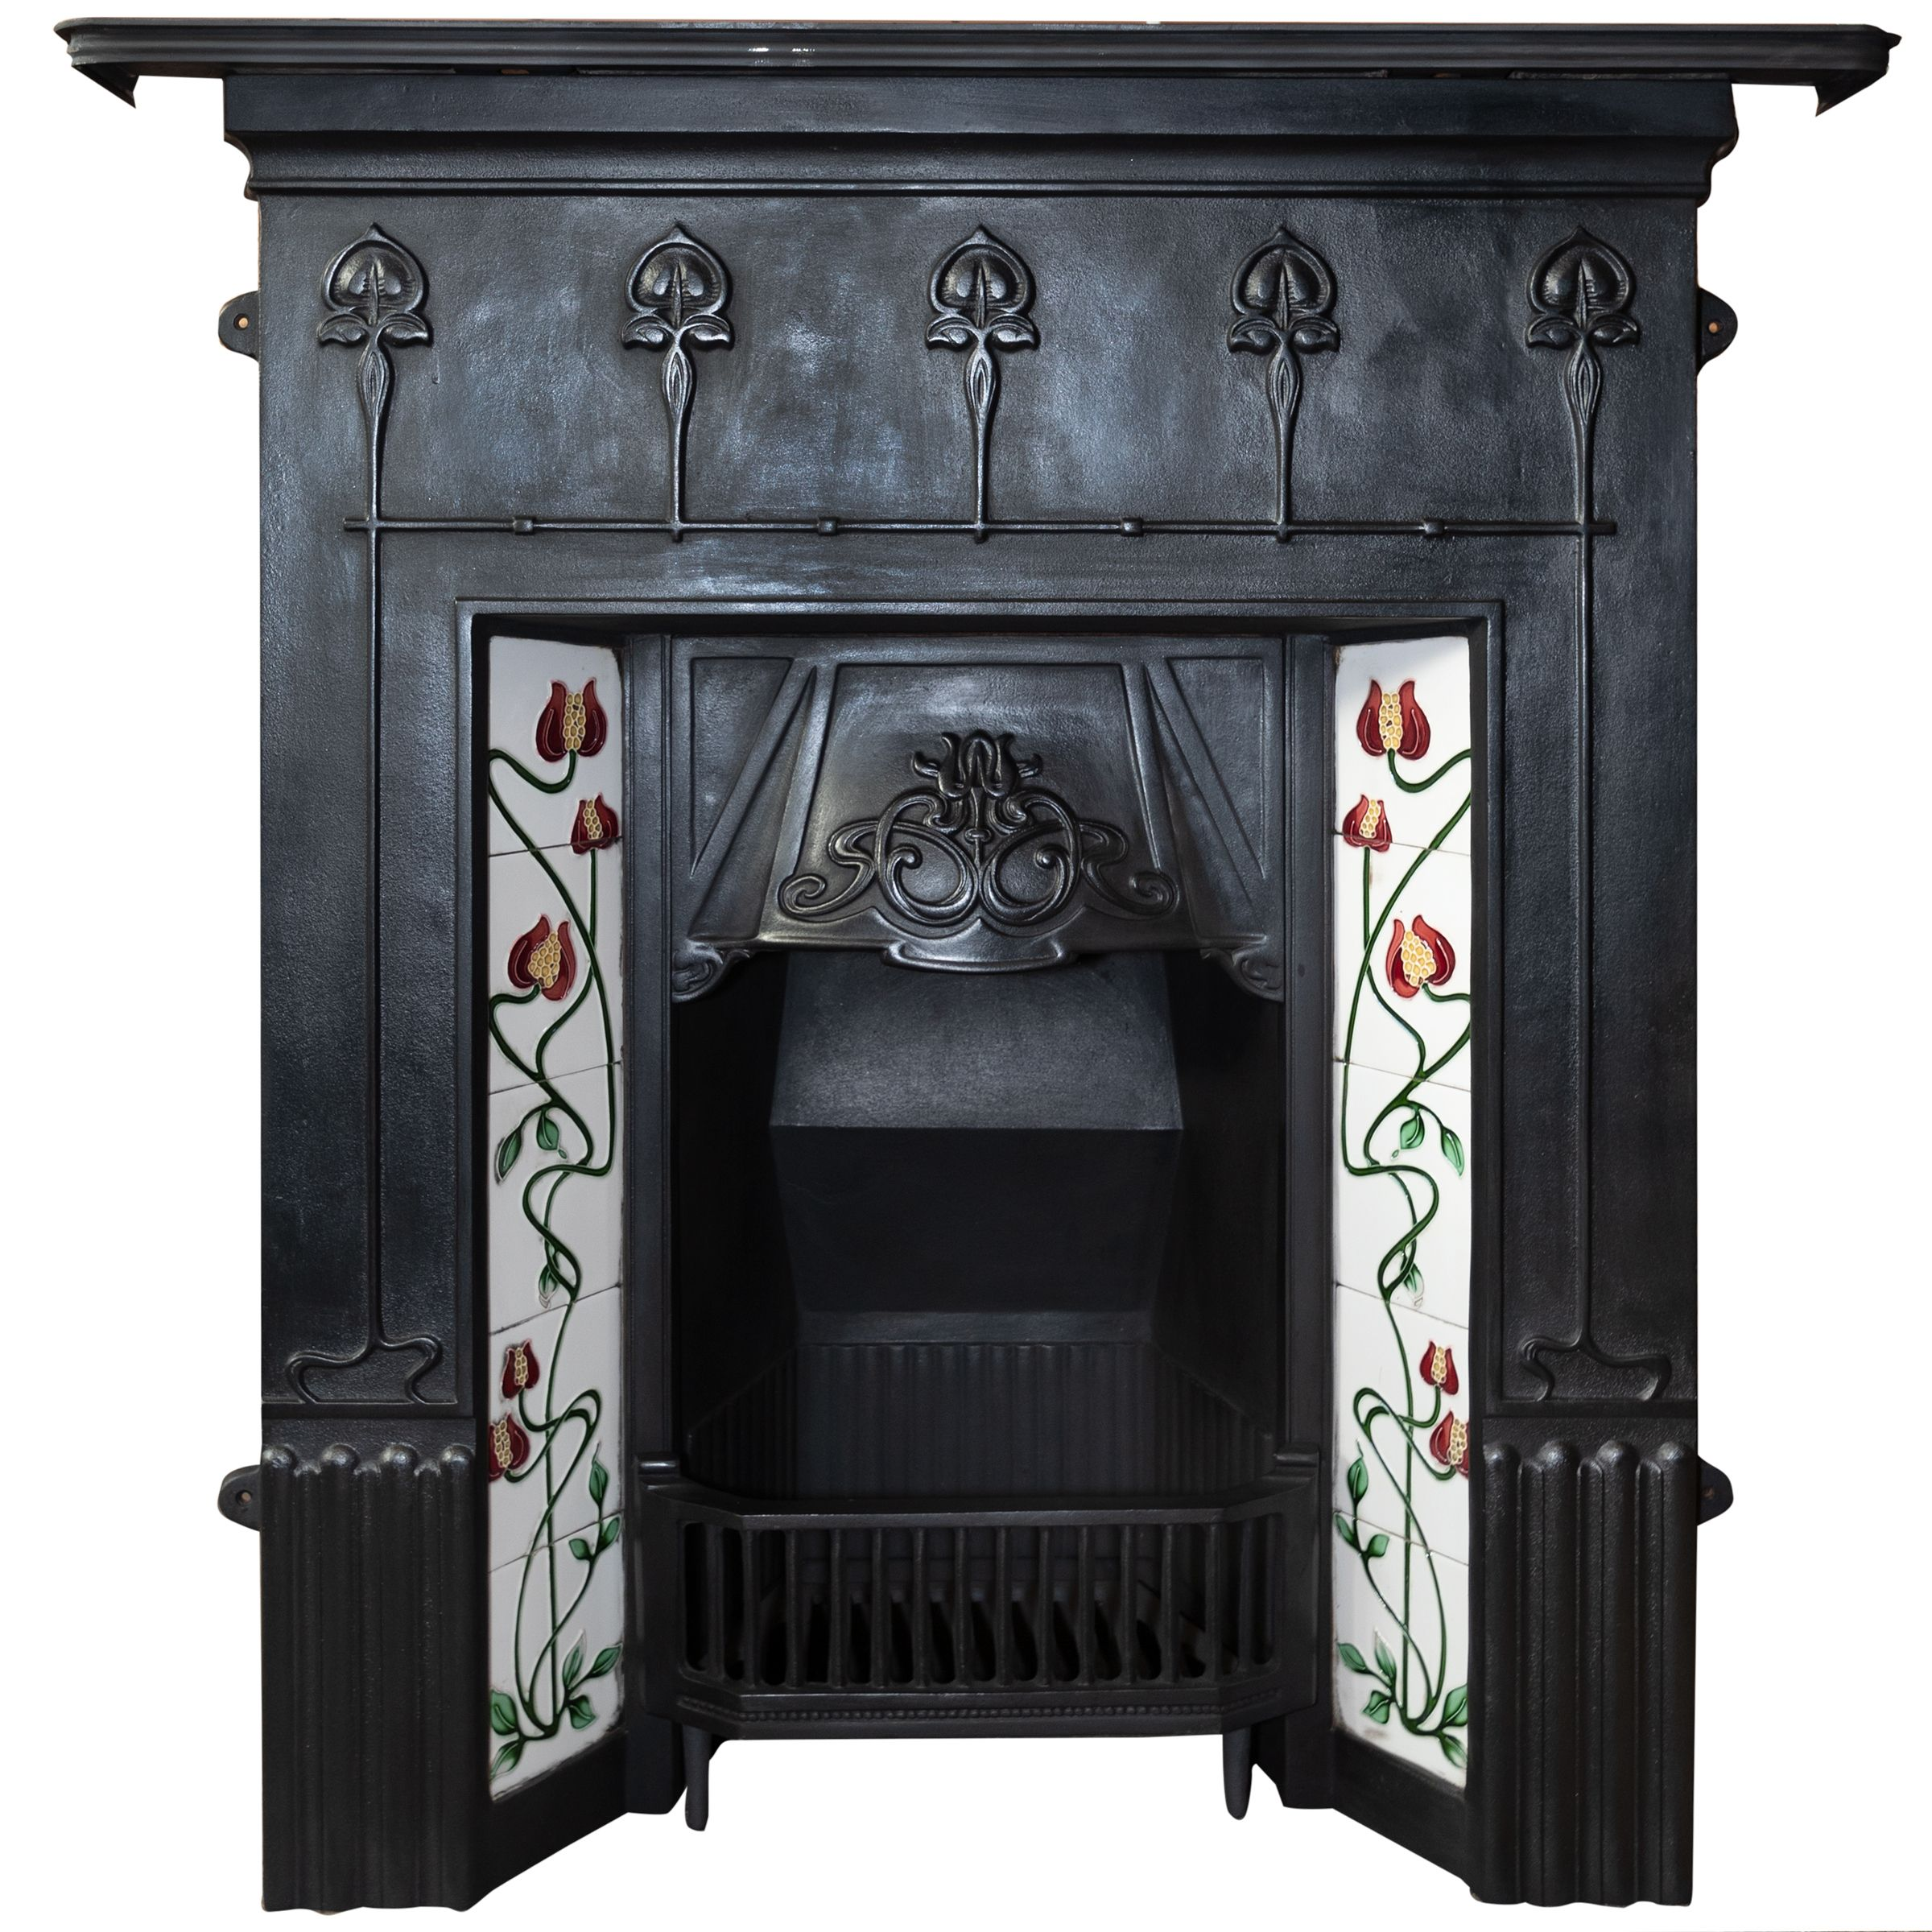 Antique Gas Fireplace Insert Awesome Huge Selection Of Antique Cast Iron Fireplaces Fully